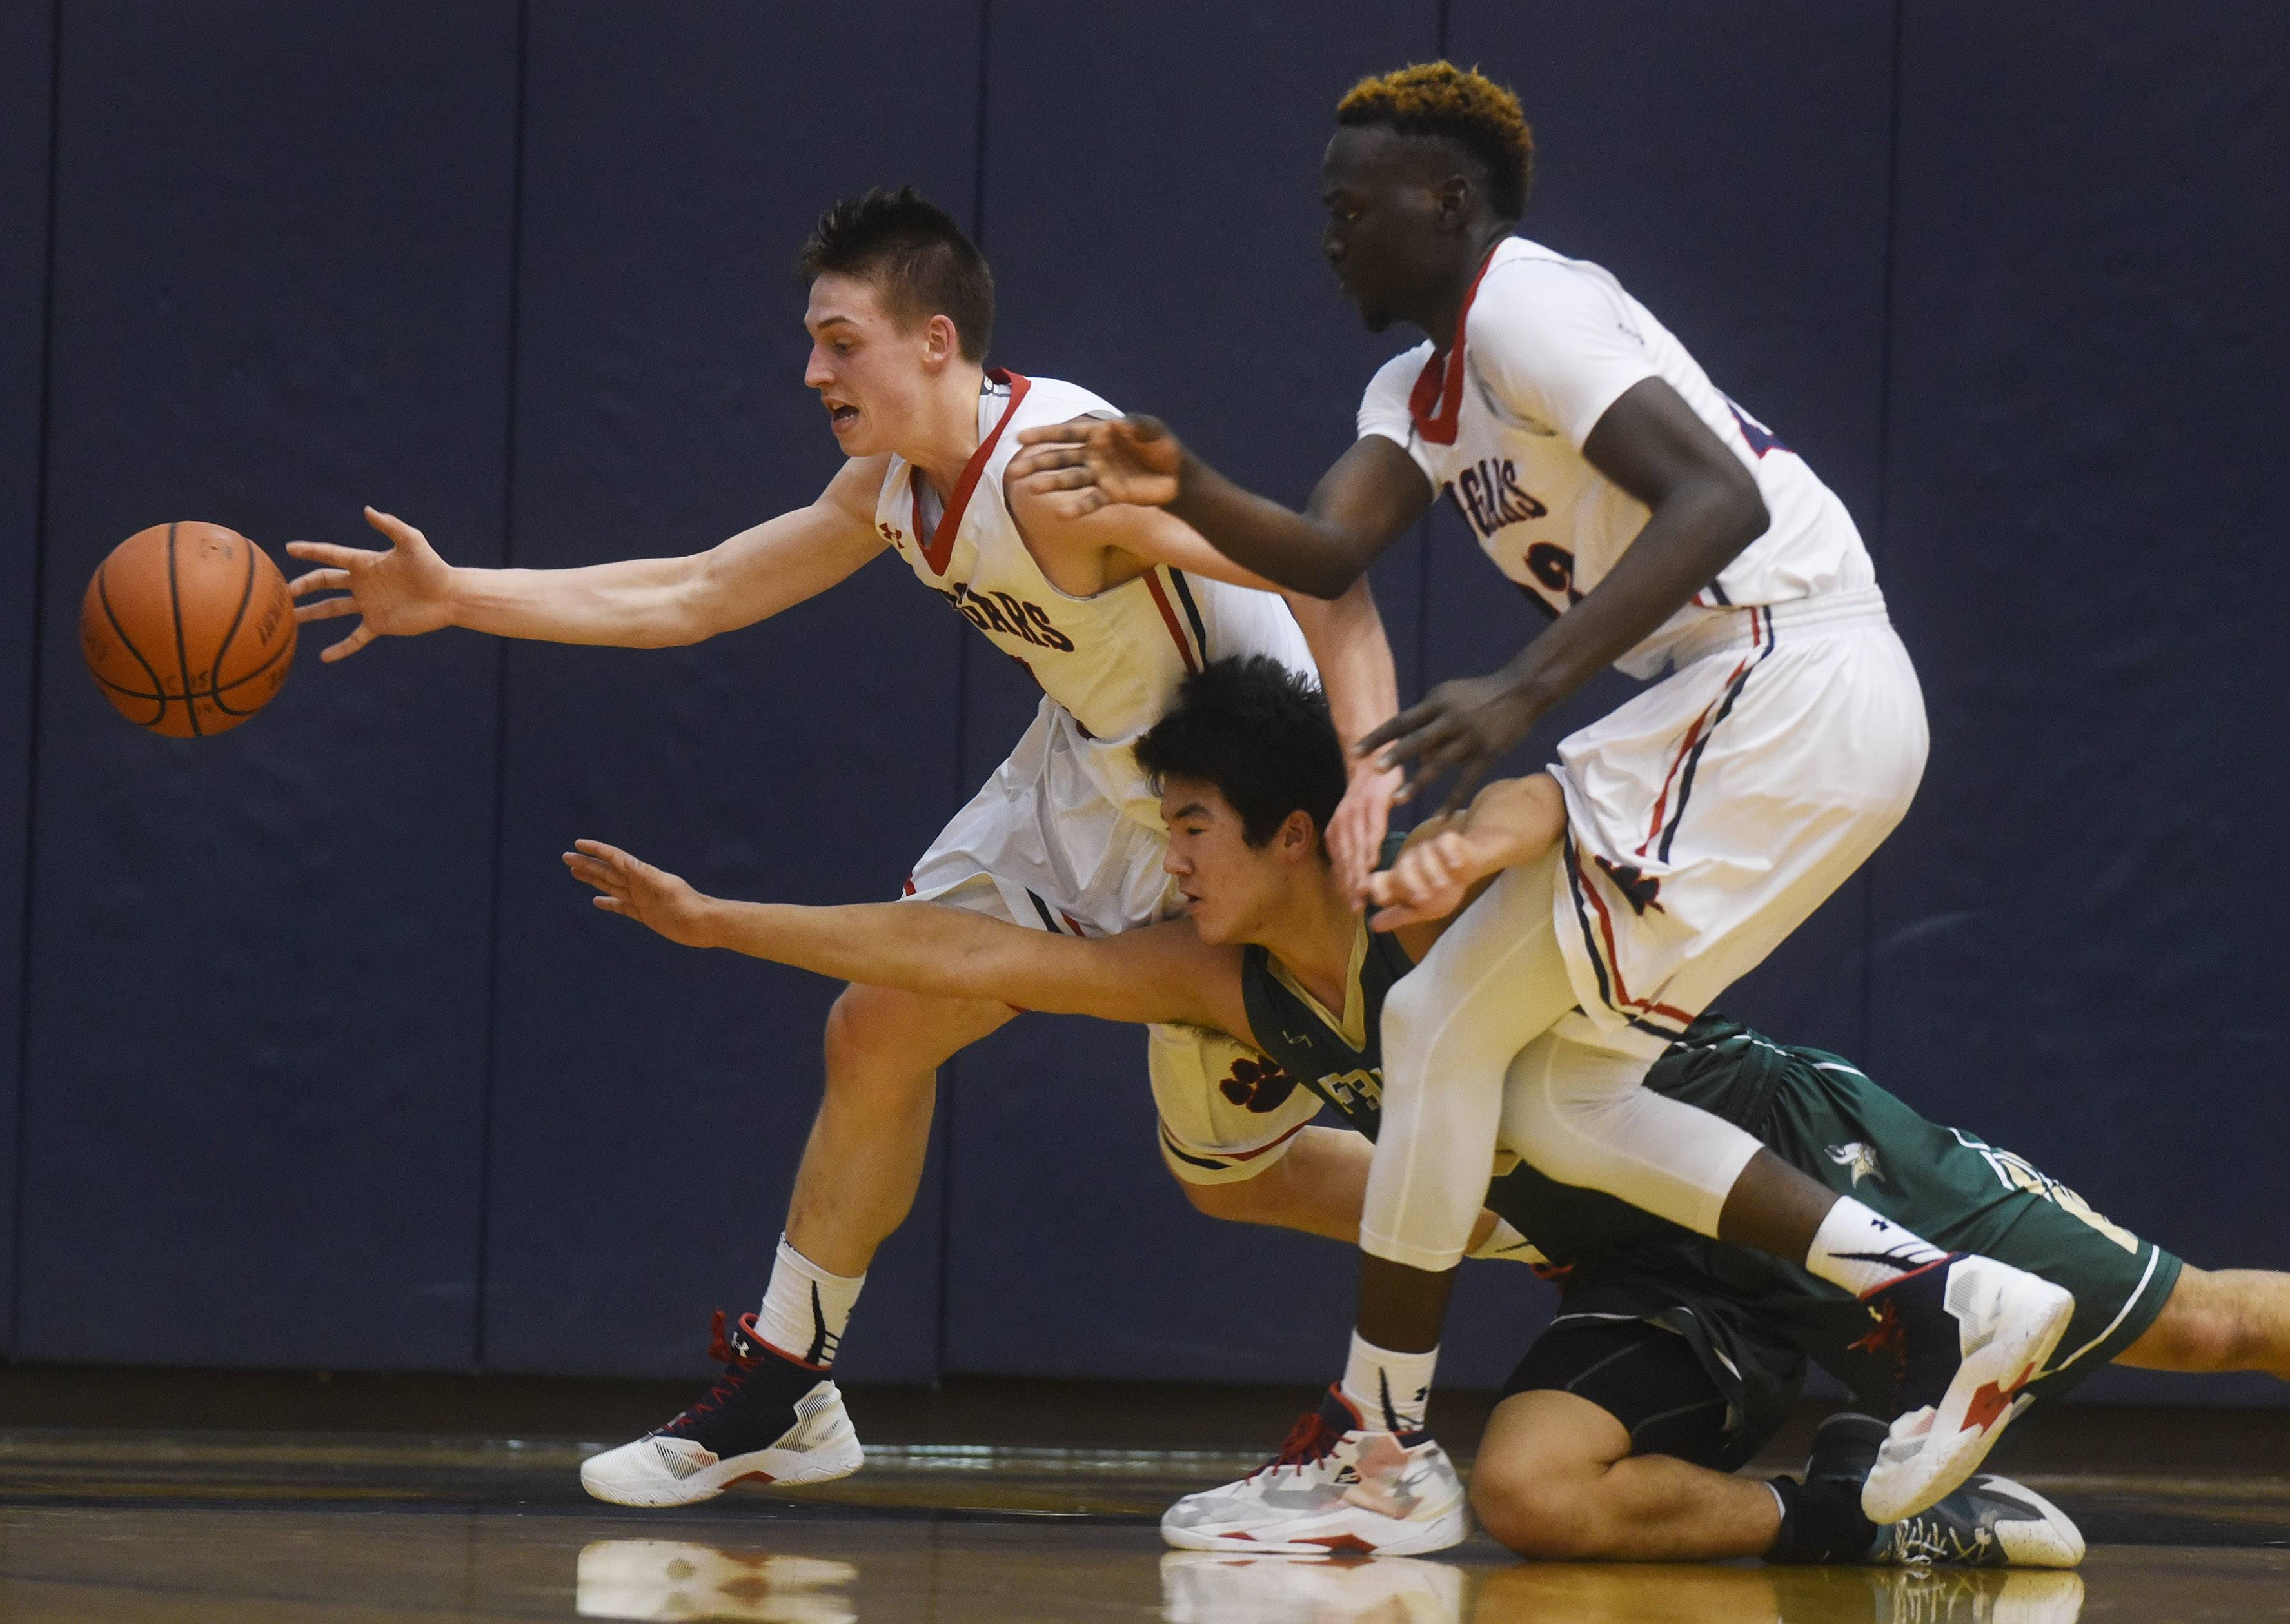 Conant's Jimmy Sotos, left, and teammate Mike Downing, here chasing a loose ball in MSL West play against Fremd, helped lead the Cougars to York's Jack Tosh championship with a 49-35 victory over St. Patrick on Friday. Sotos was named tournament MVP, and Downing also made the all-tournament team.